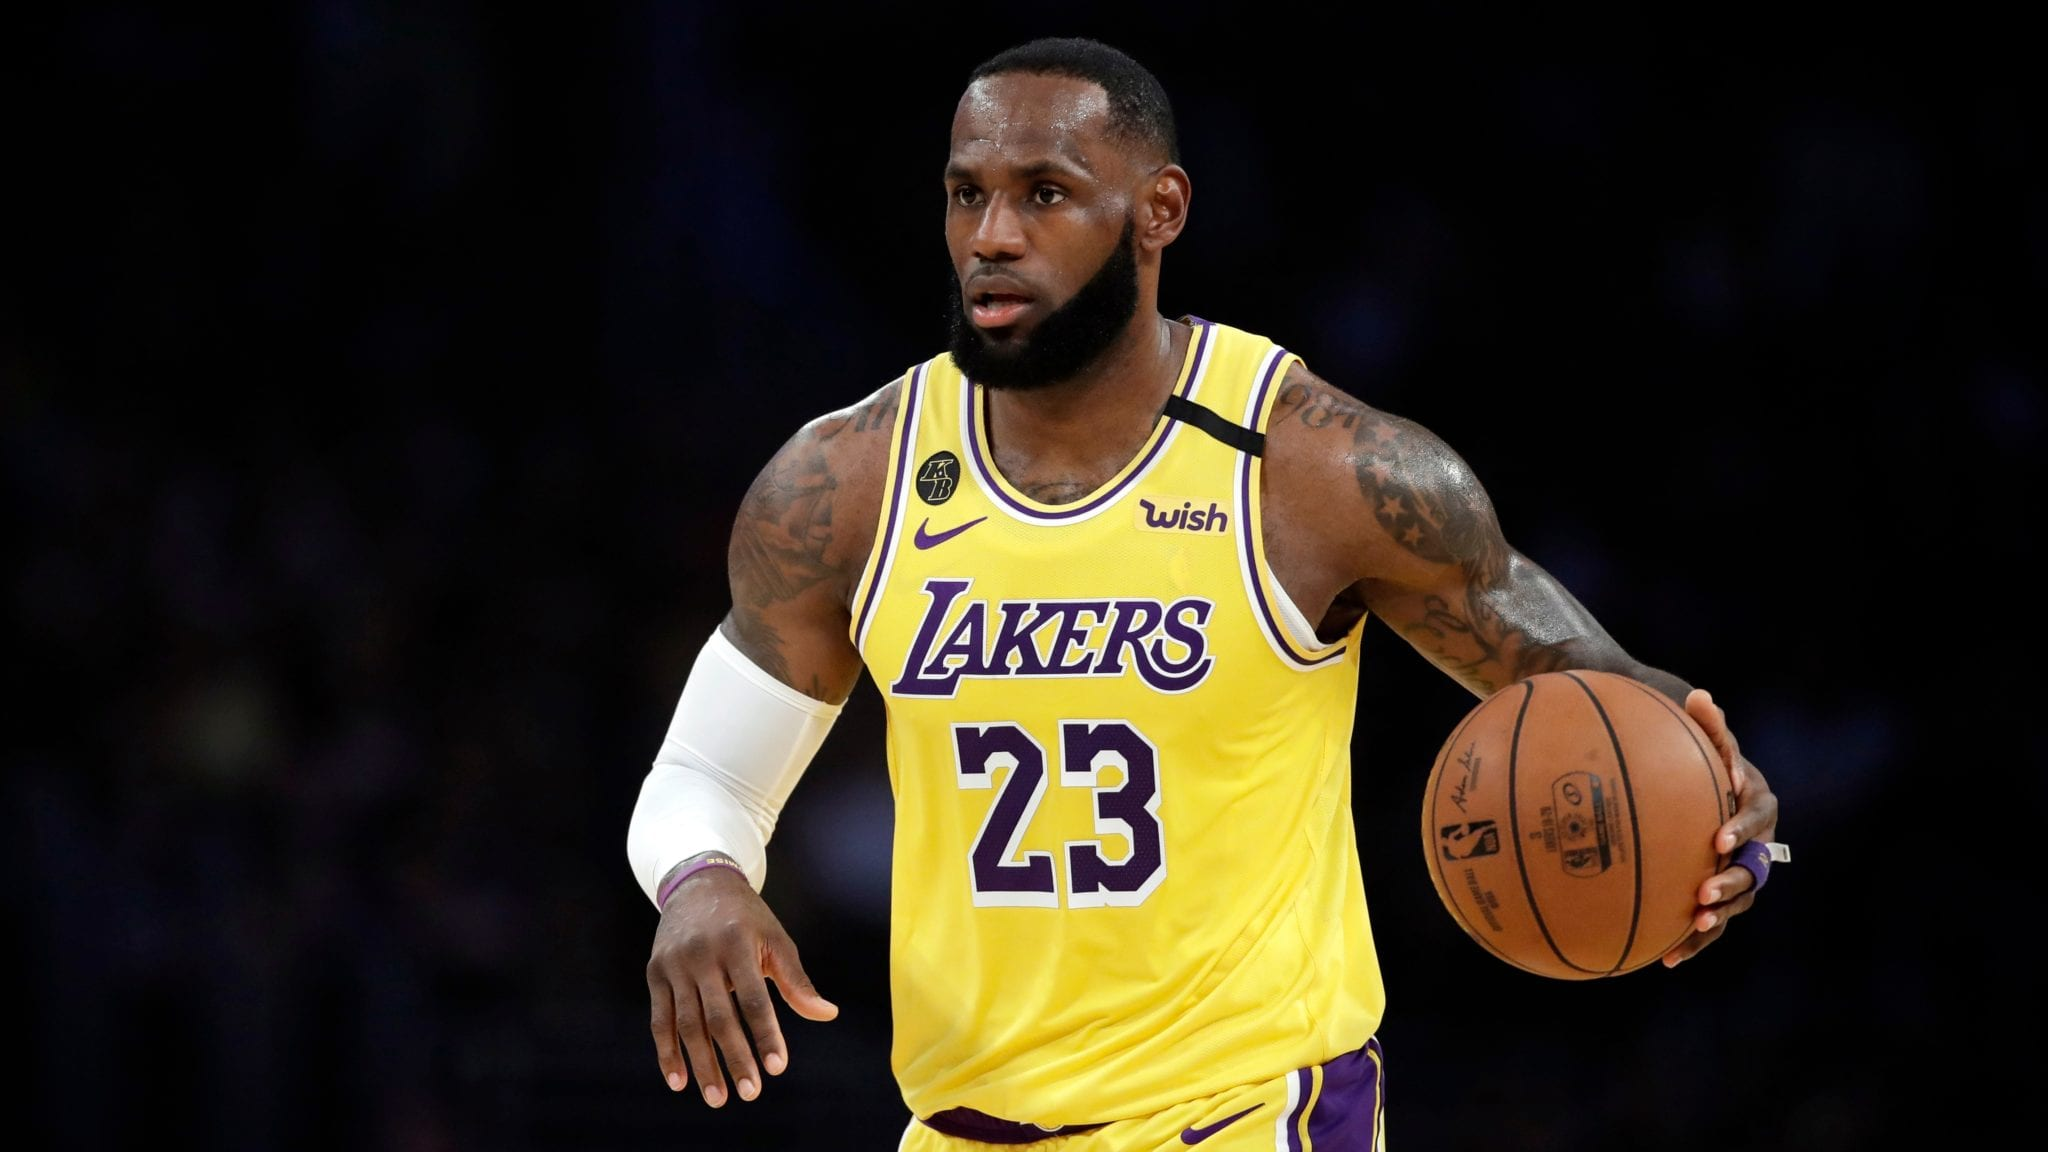 LeBron James To Pass $1 Billion In Career Earnings This Year